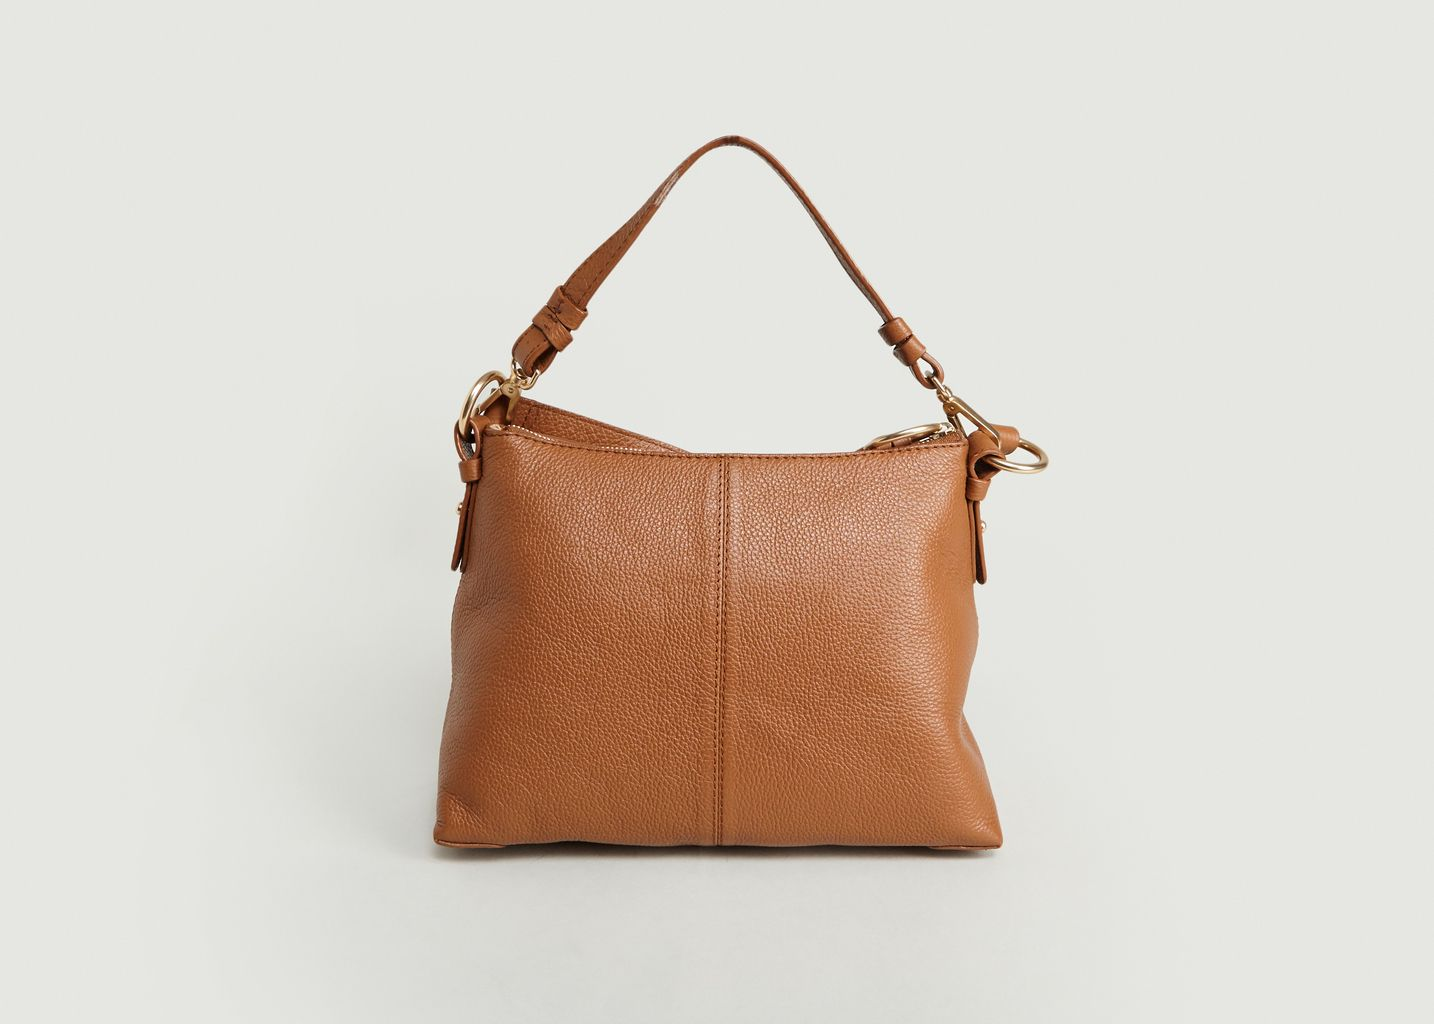 Sac Joan Small Hobo - See by Chloé